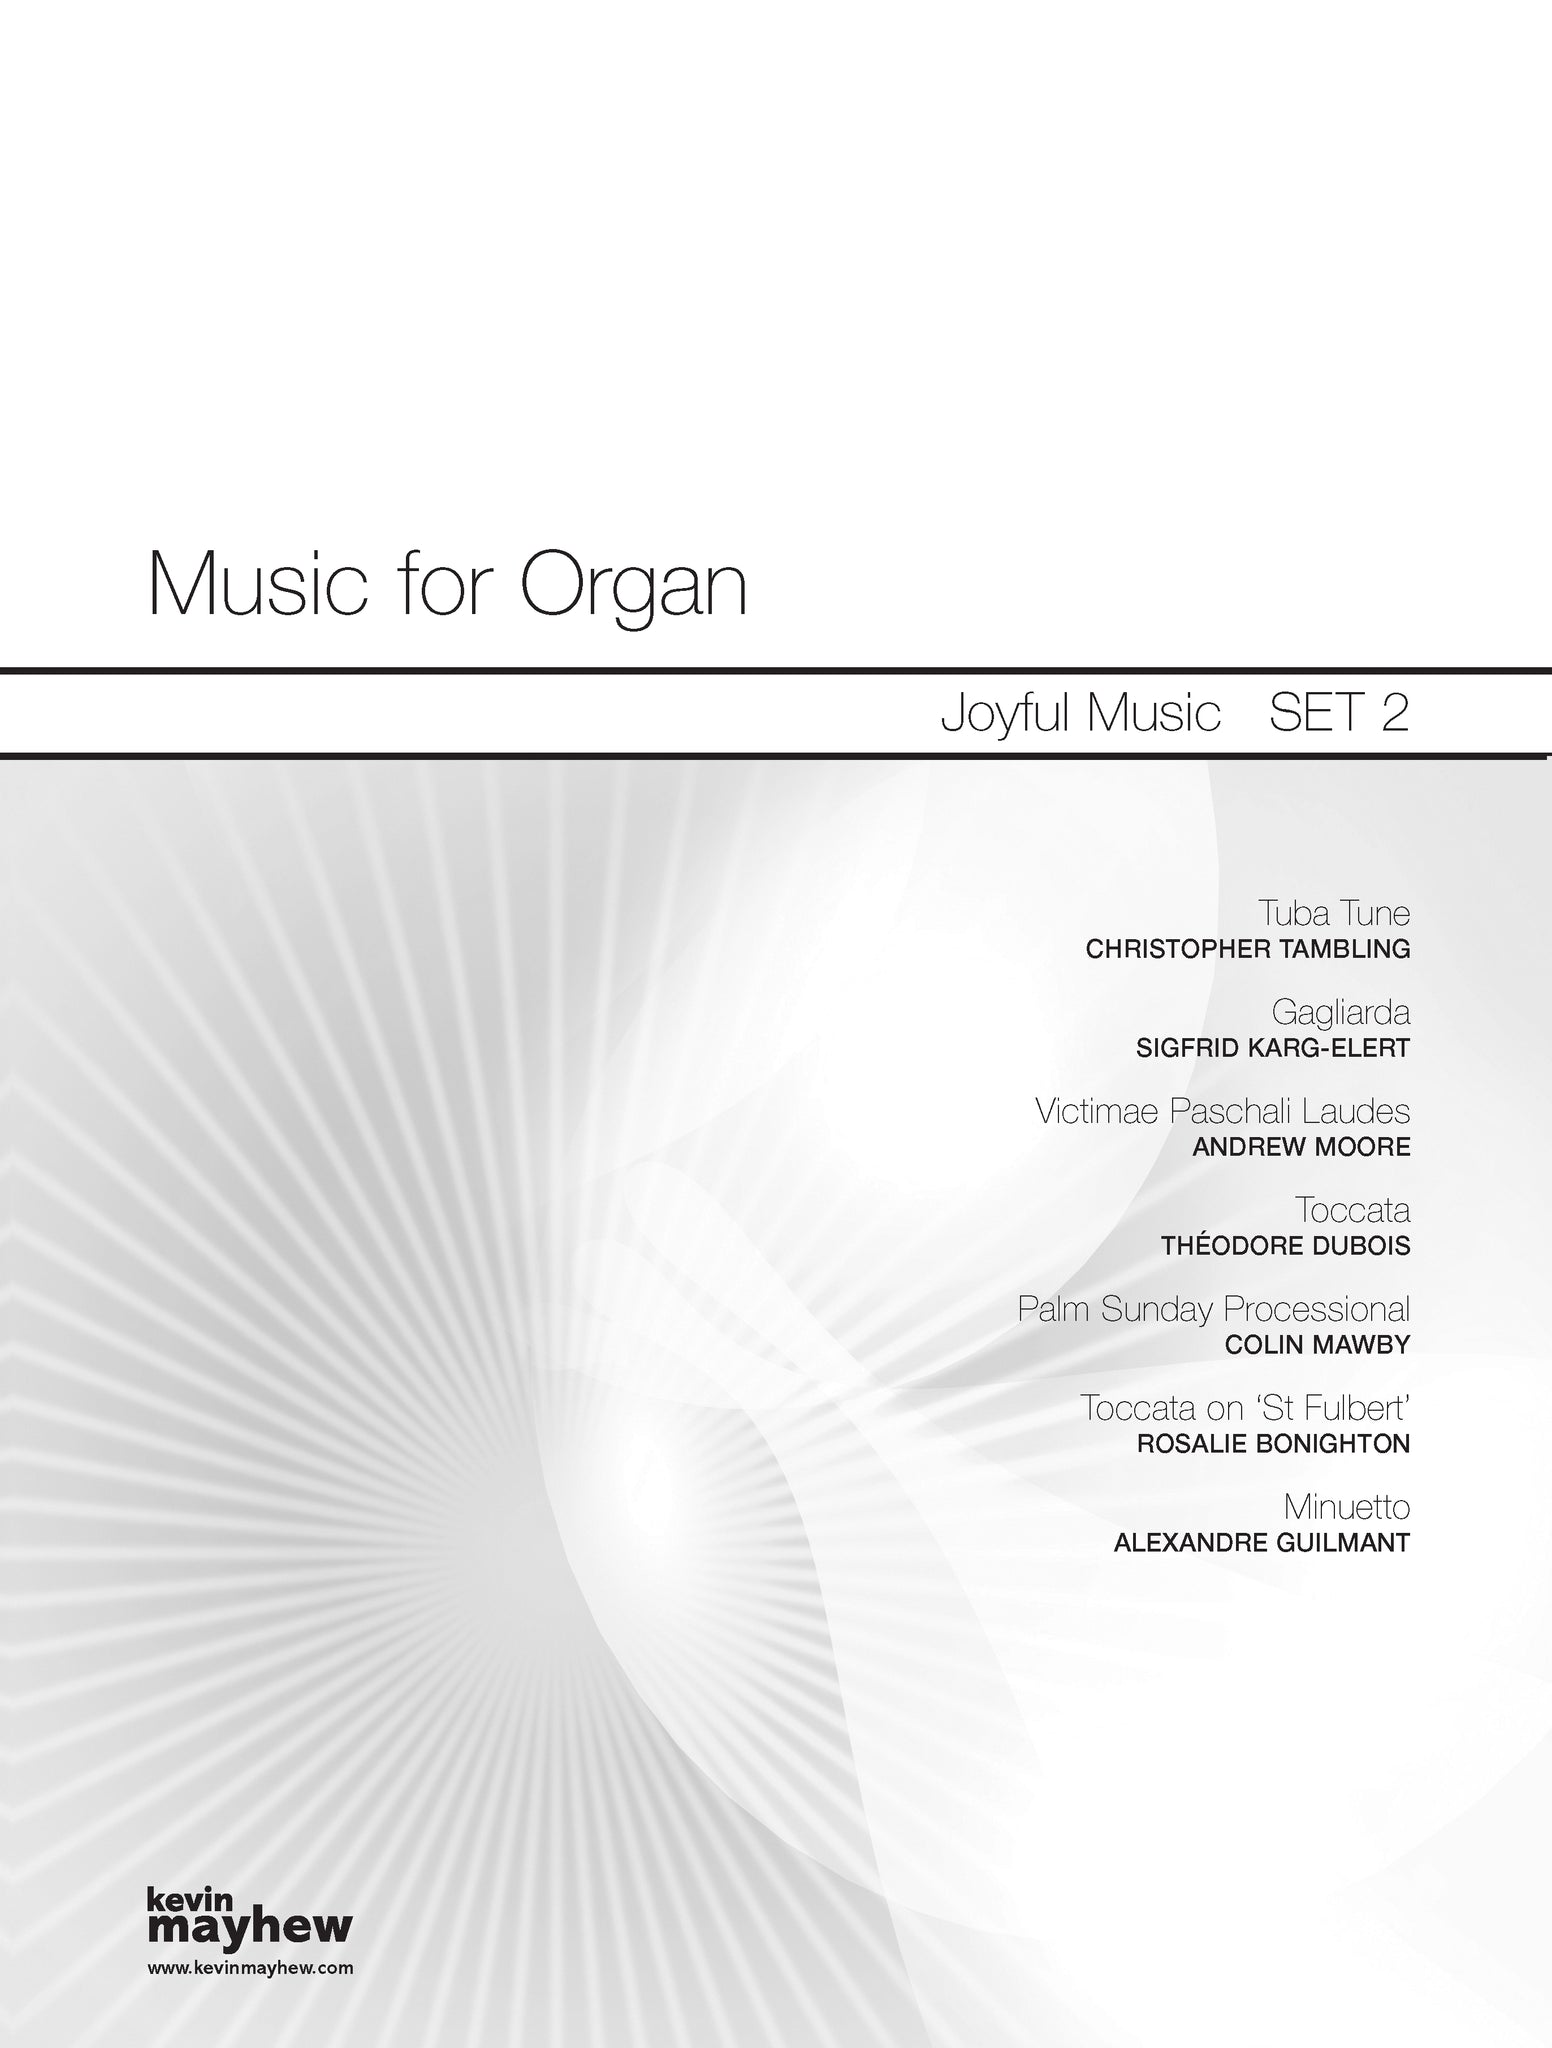 Music For Organ-Joyful Music Set 2Music For Organ-Joyful Music Set 2